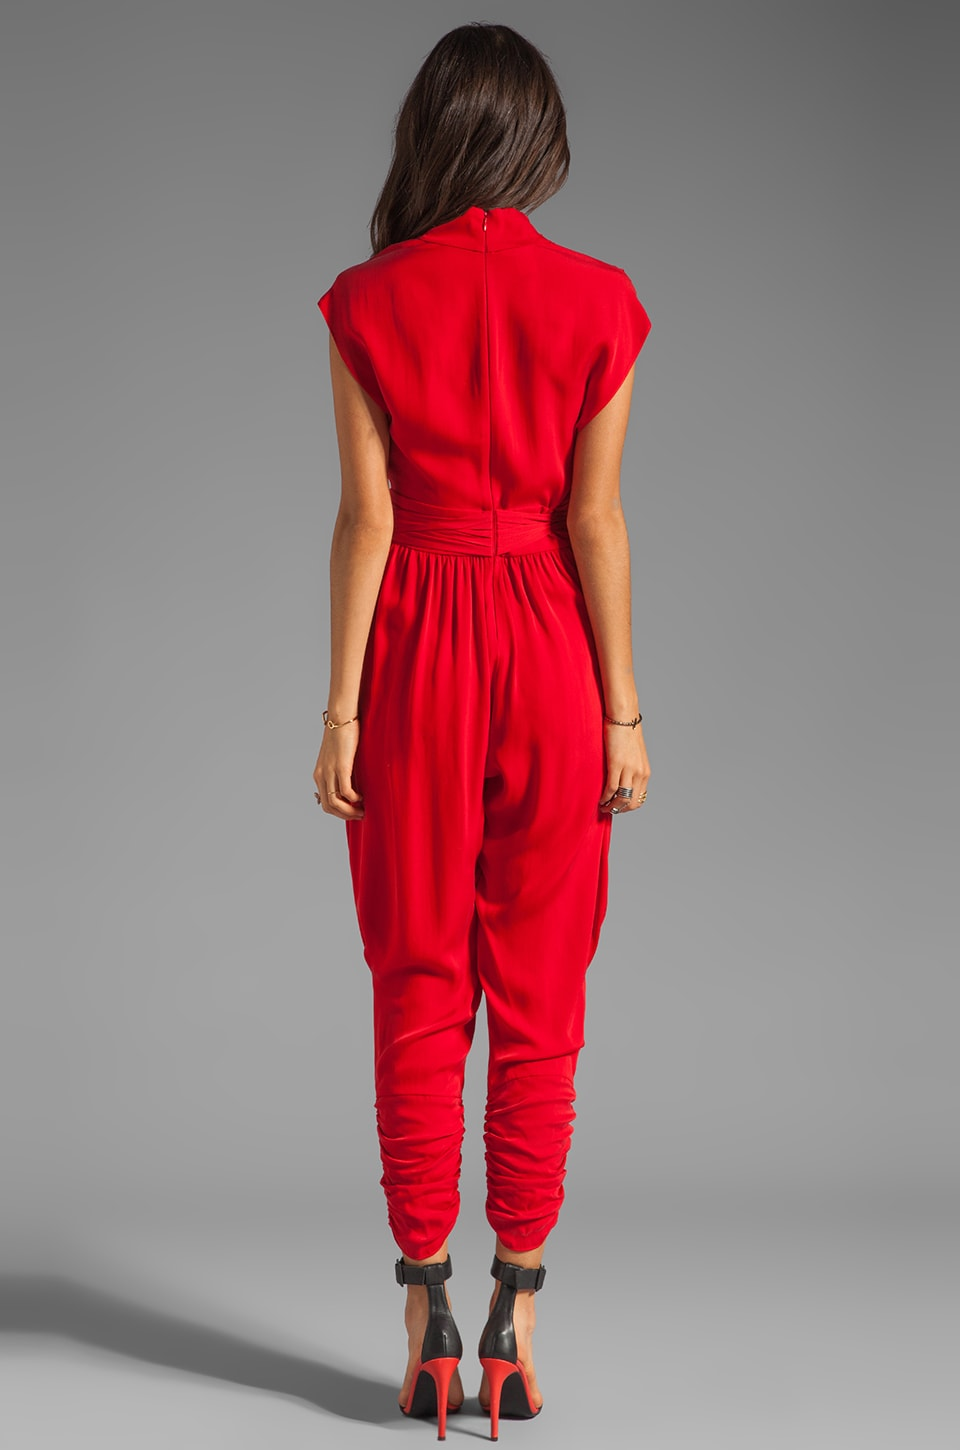 Catherine Malandrino Favorites Cap Sleeve Jumper in Scarlet